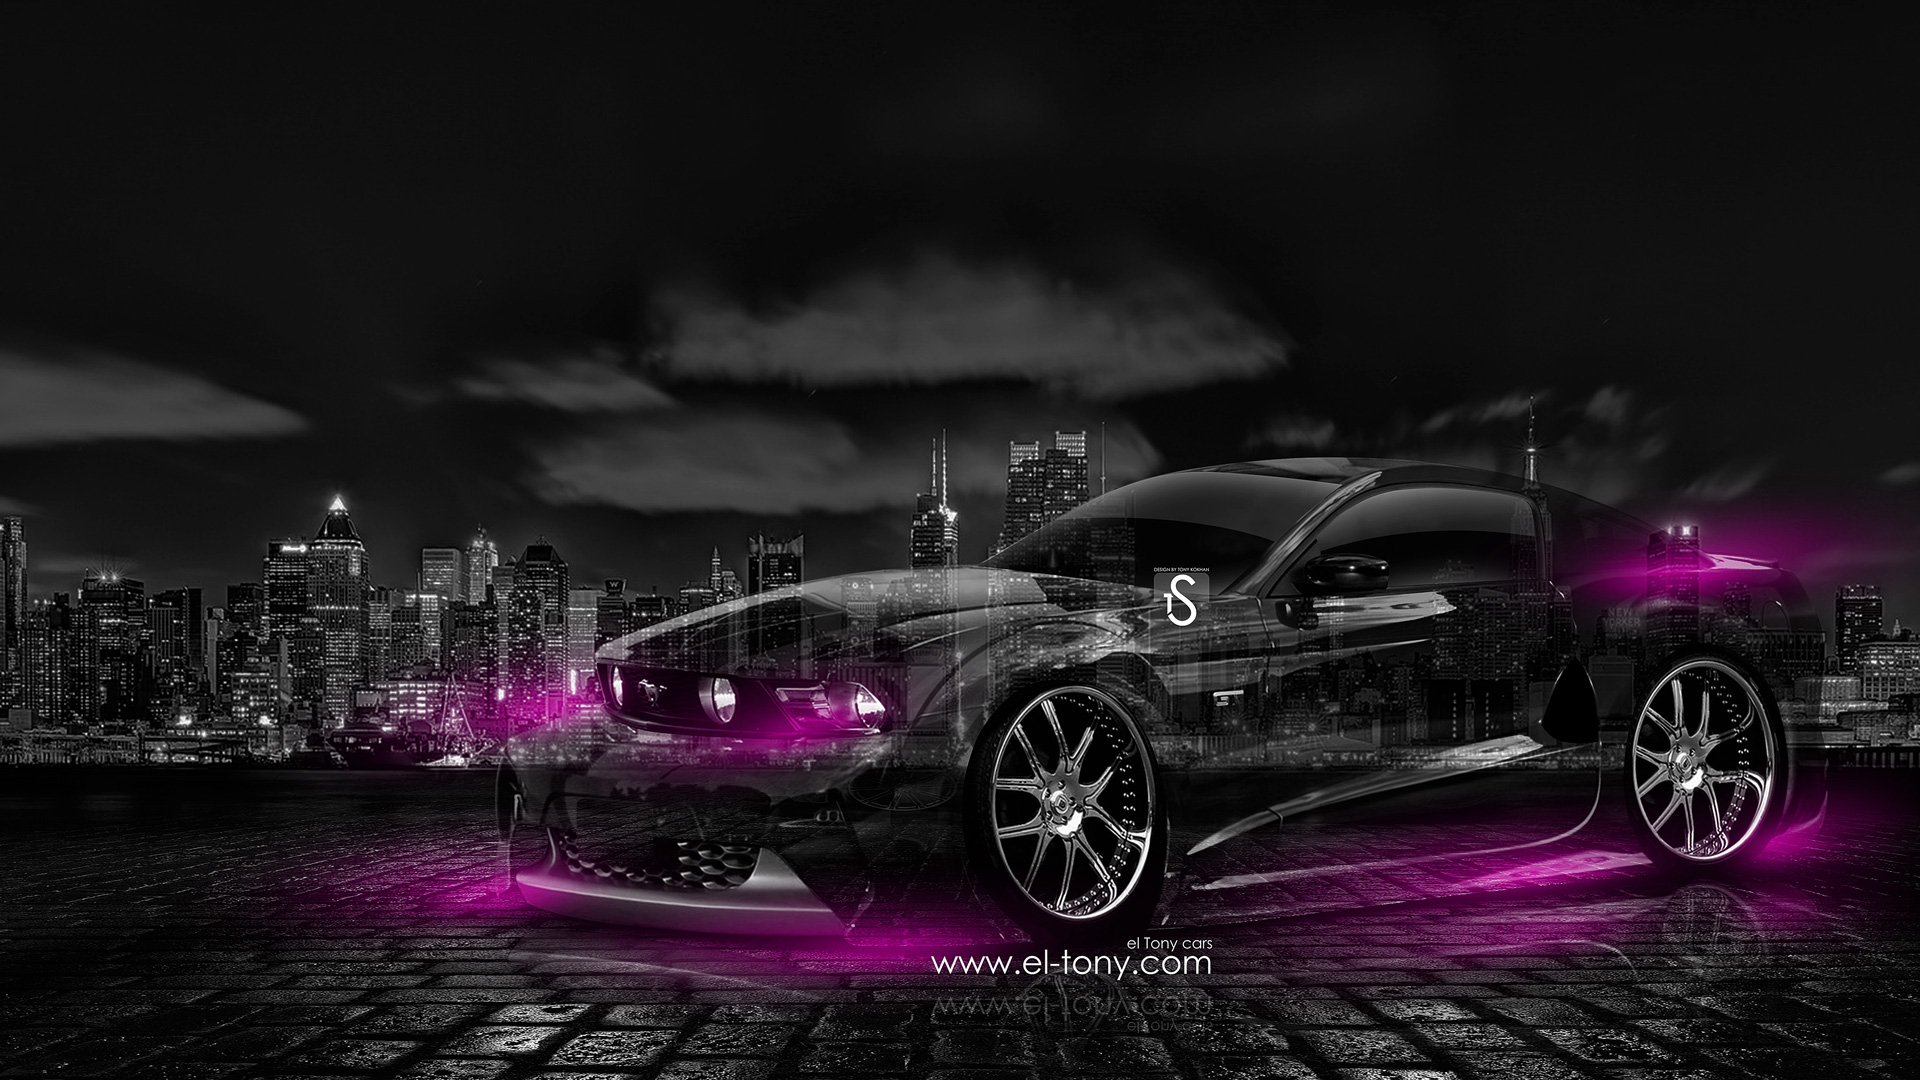 ford mustang gt muscle crystal city car 2014 - Mustang 2014 Purple